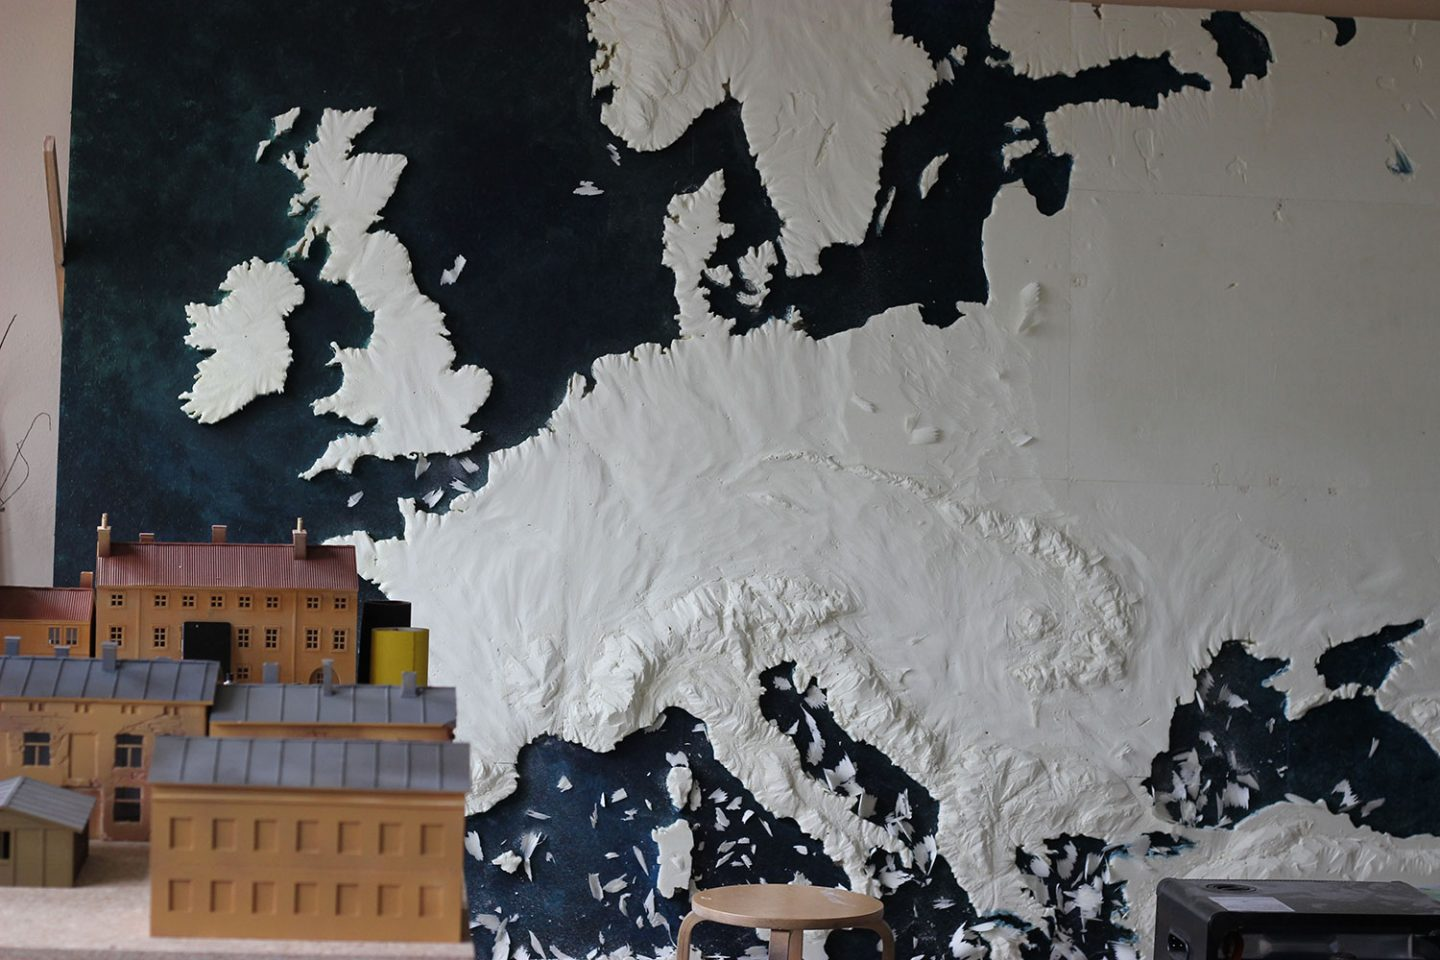 A work-in-progress shot of a three-dimensional map of Europe that will be used in the series.